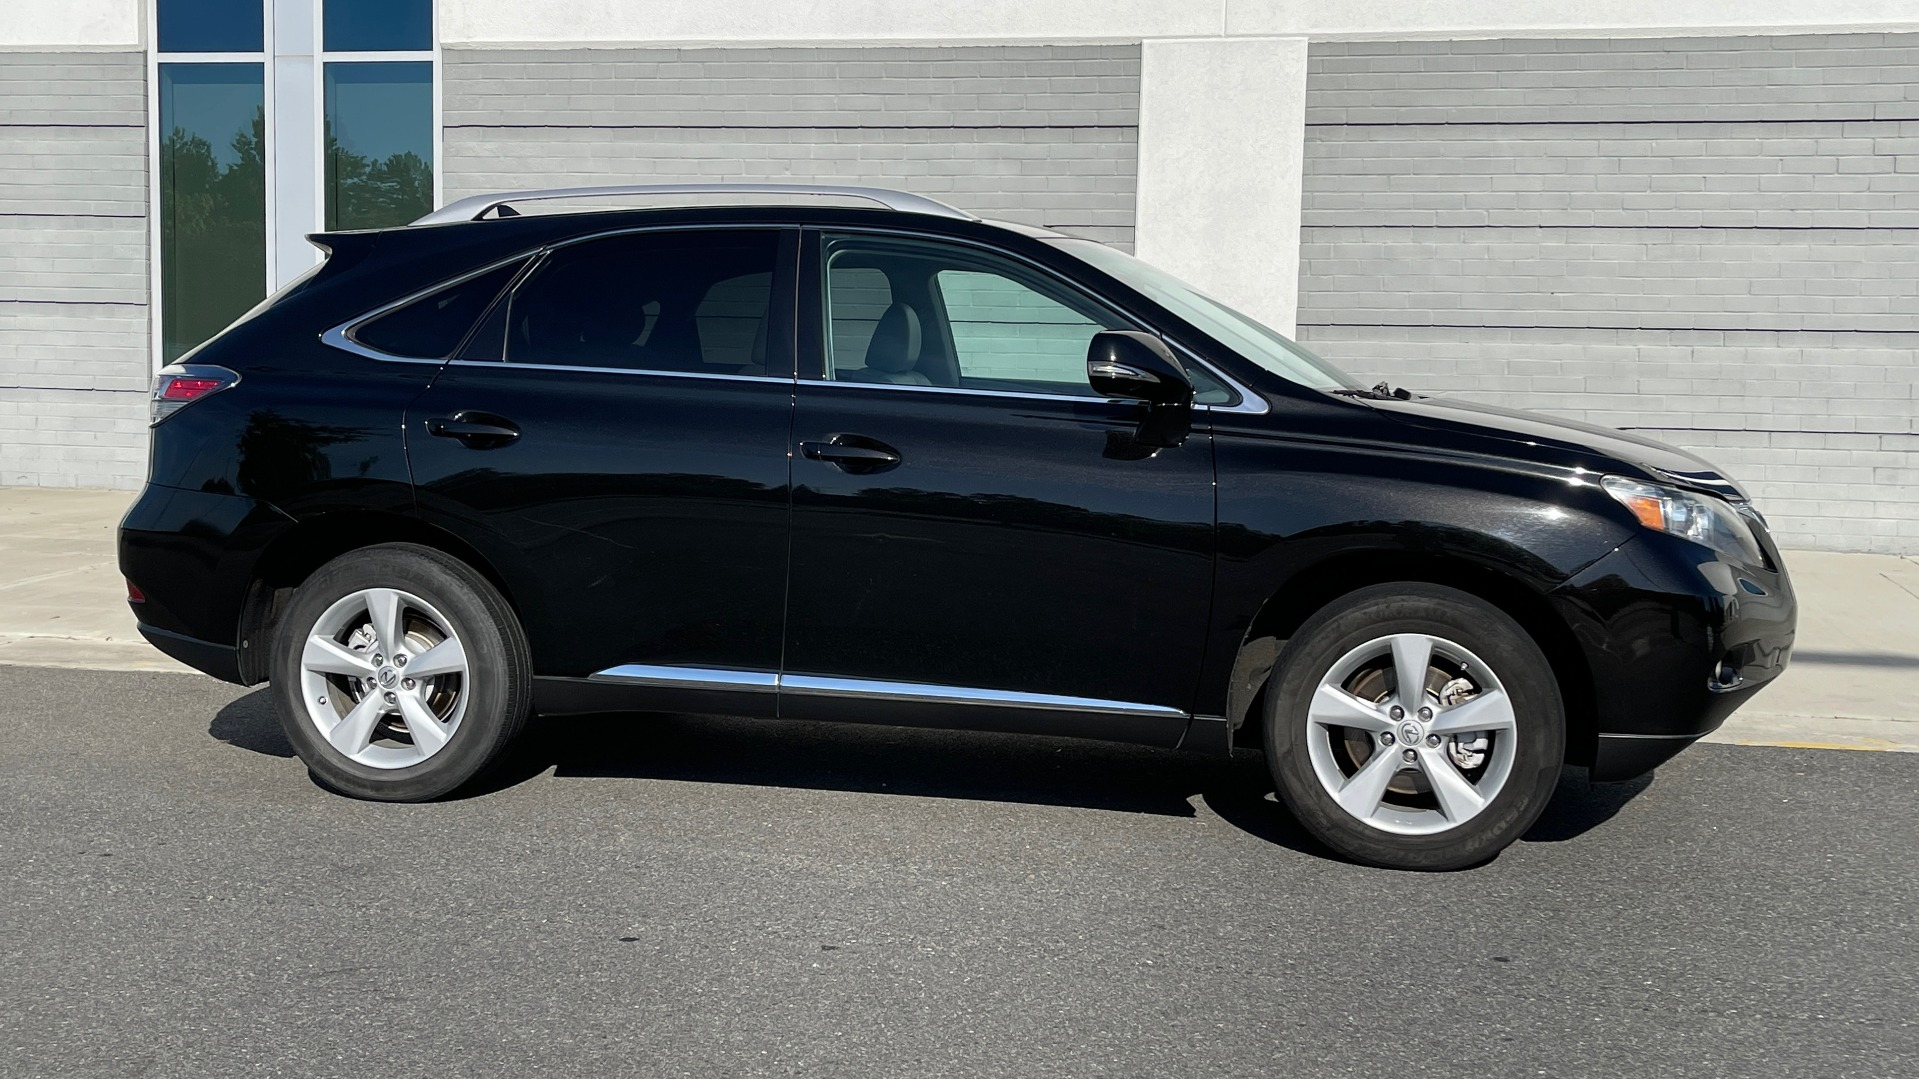 Used 2011 Lexus RX 350 PREMIUM / TOWING PREP PKG / VENTILATED STS / SUNROOF / REARVIEW for sale Sold at Formula Imports in Charlotte NC 28227 6